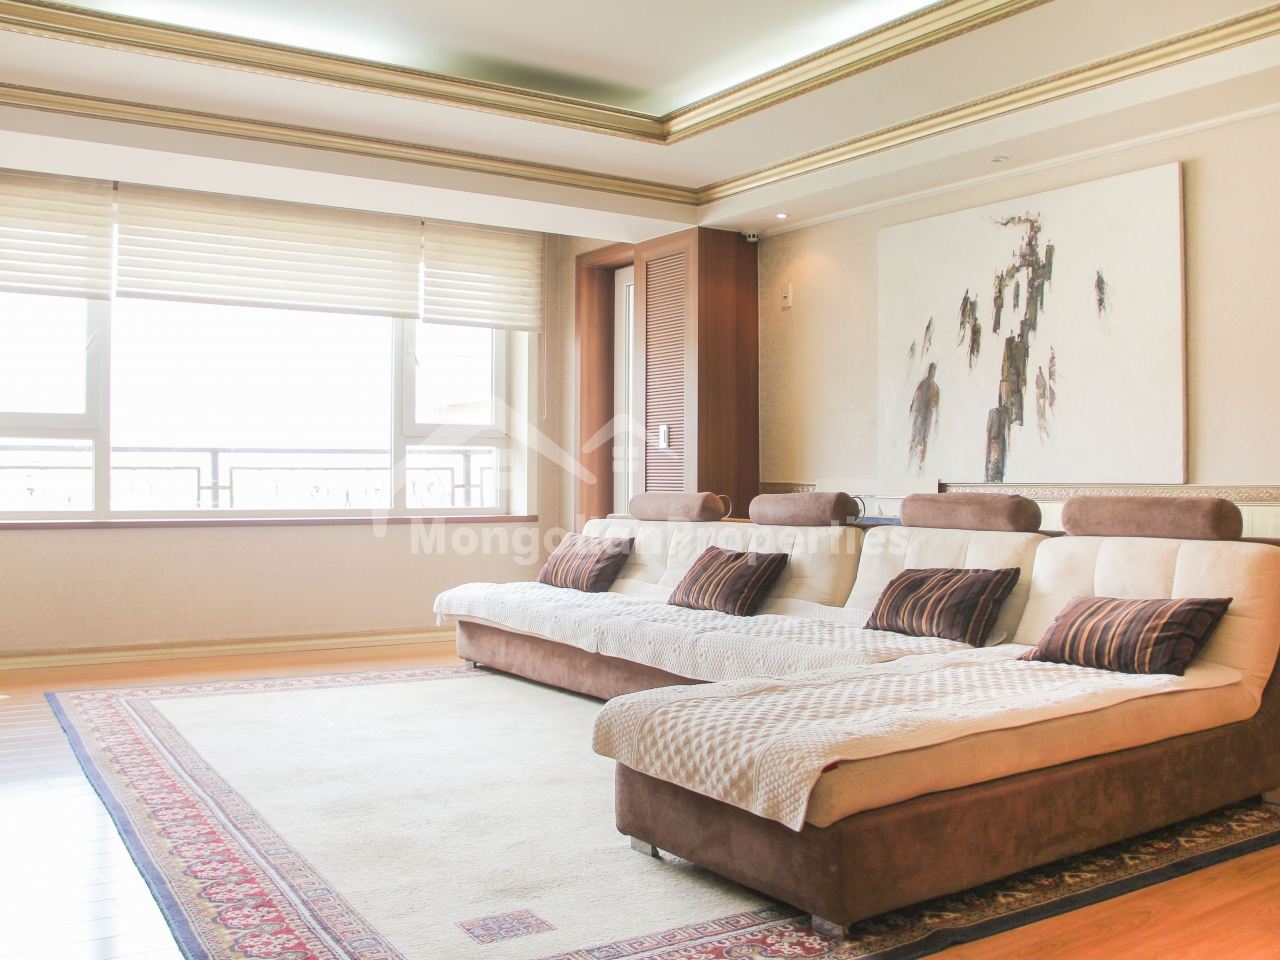 Great View, Gorgeous 3 bedroom, 1 office room apartment for rent in Seoul Royal County